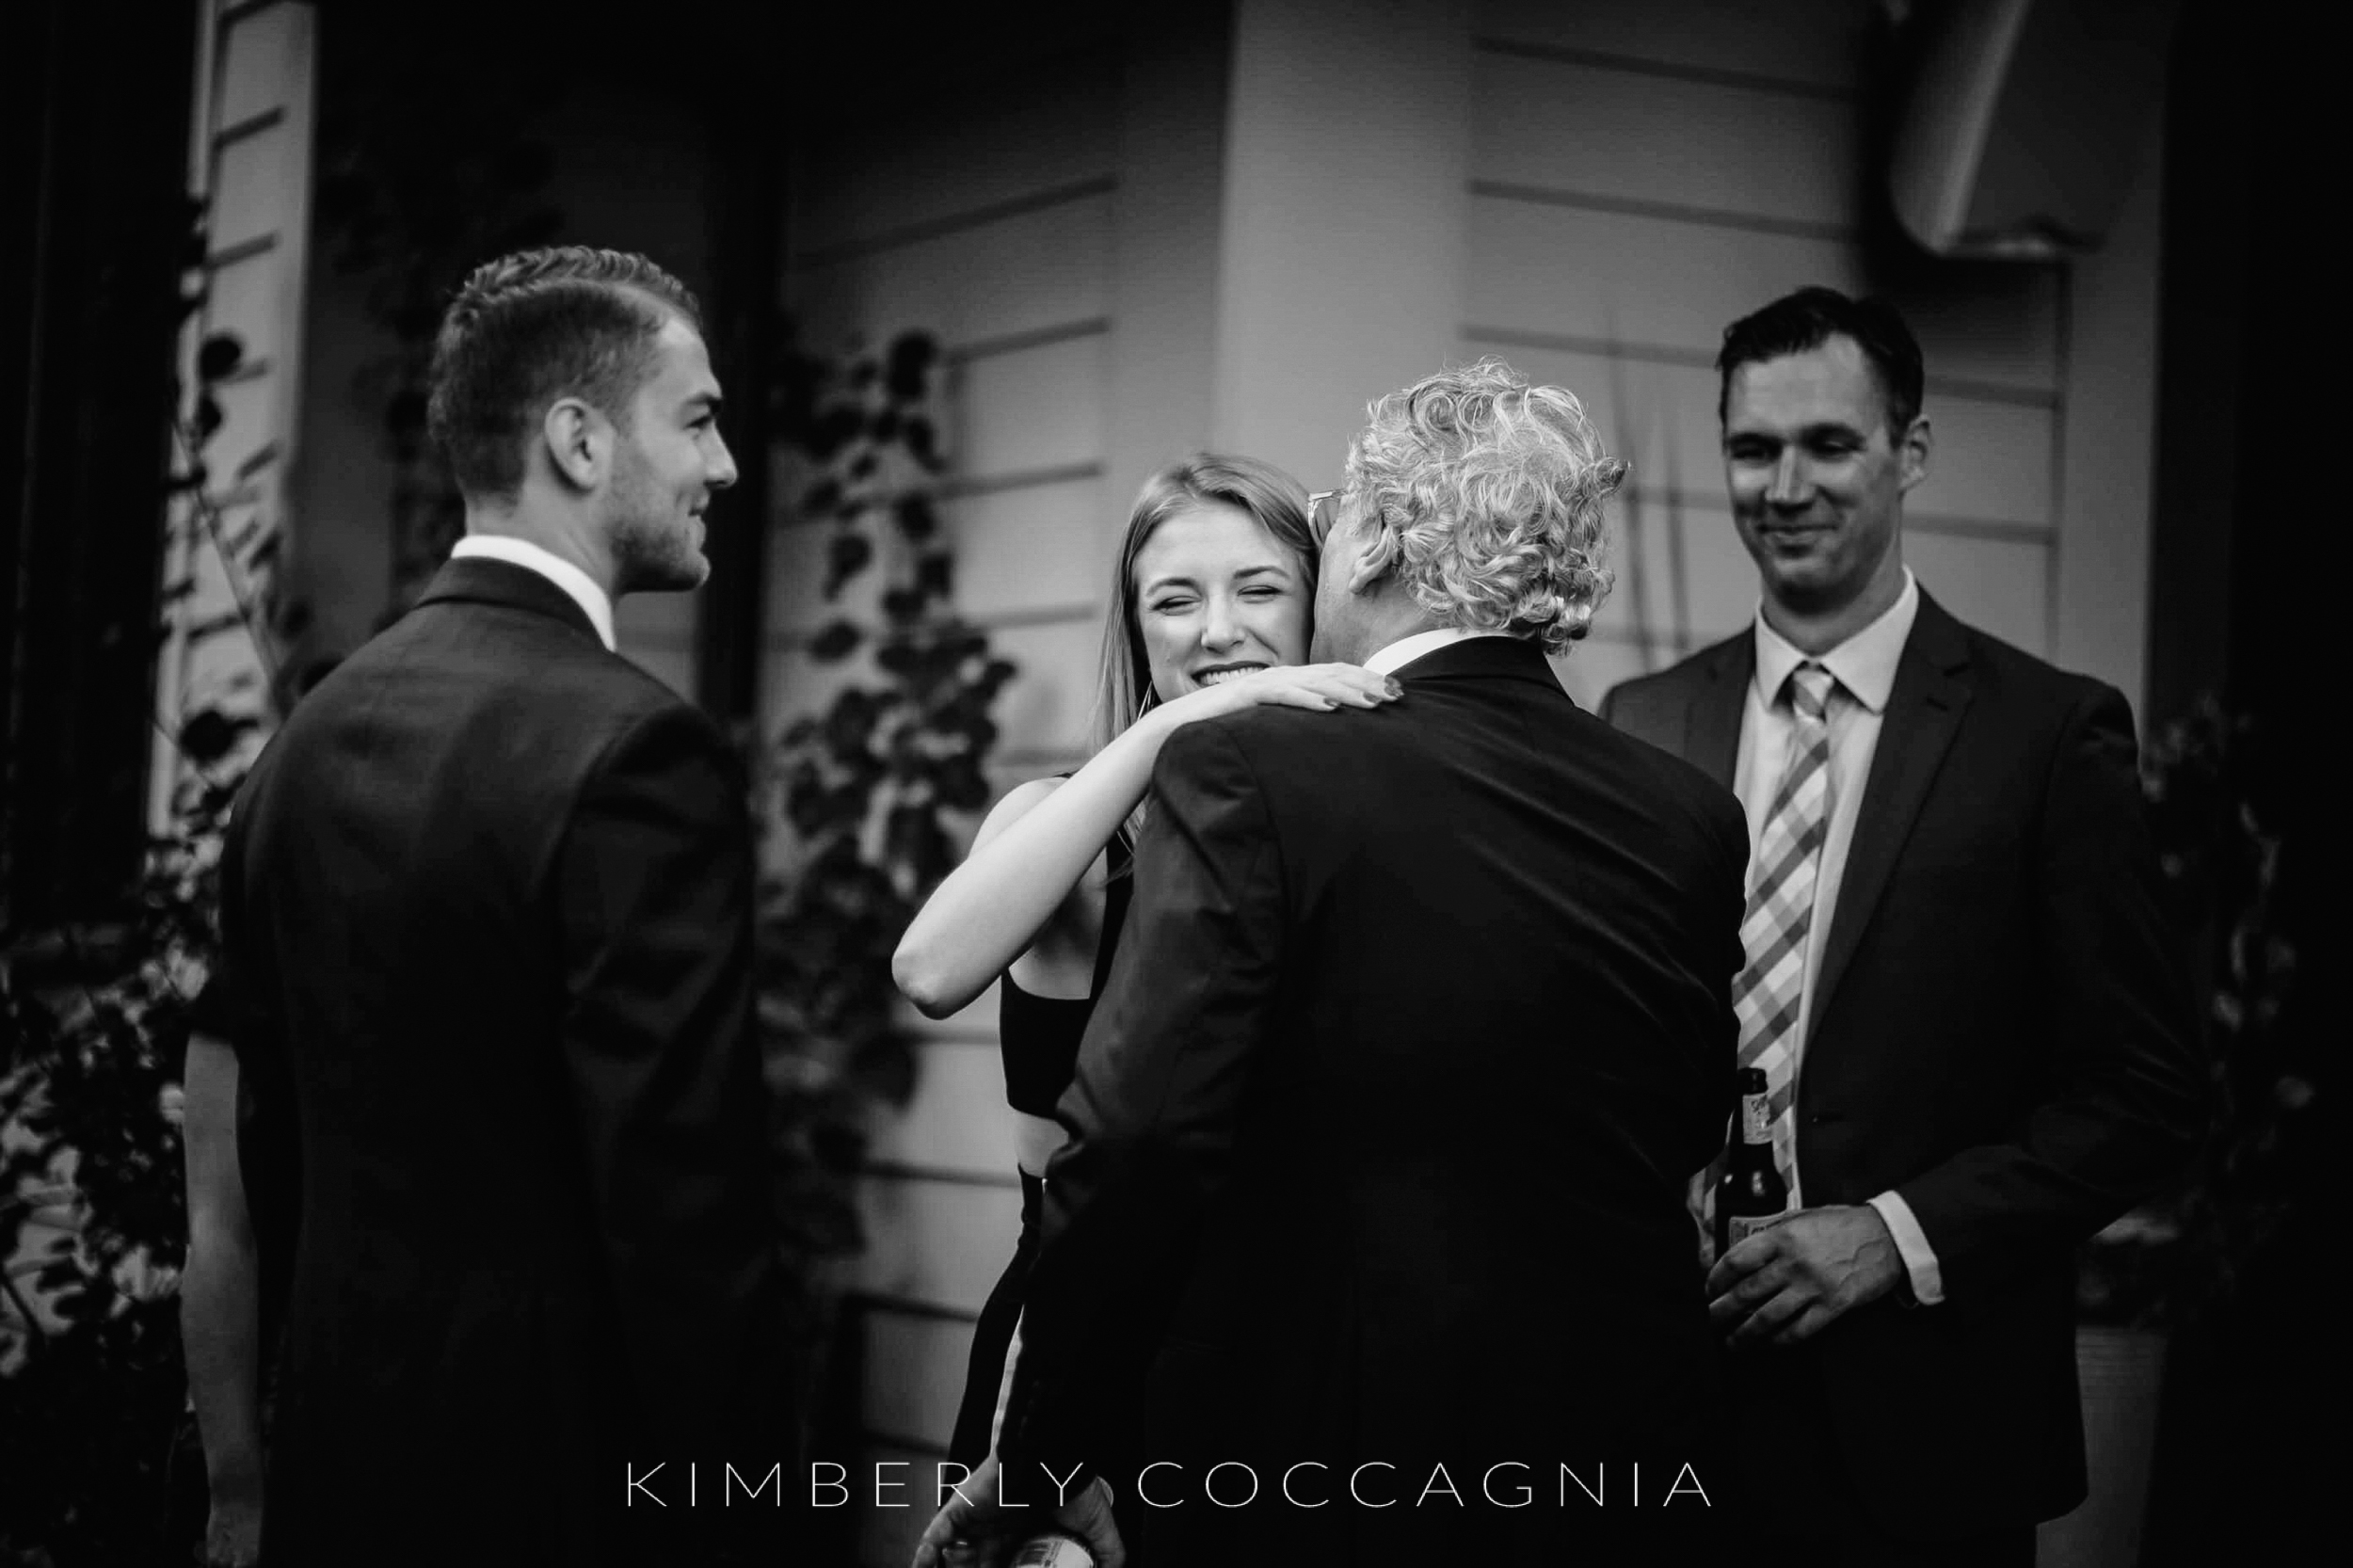 Kimberly+Coccagnia+Hudson+Valley+Wedding+Photographer-14.JPG